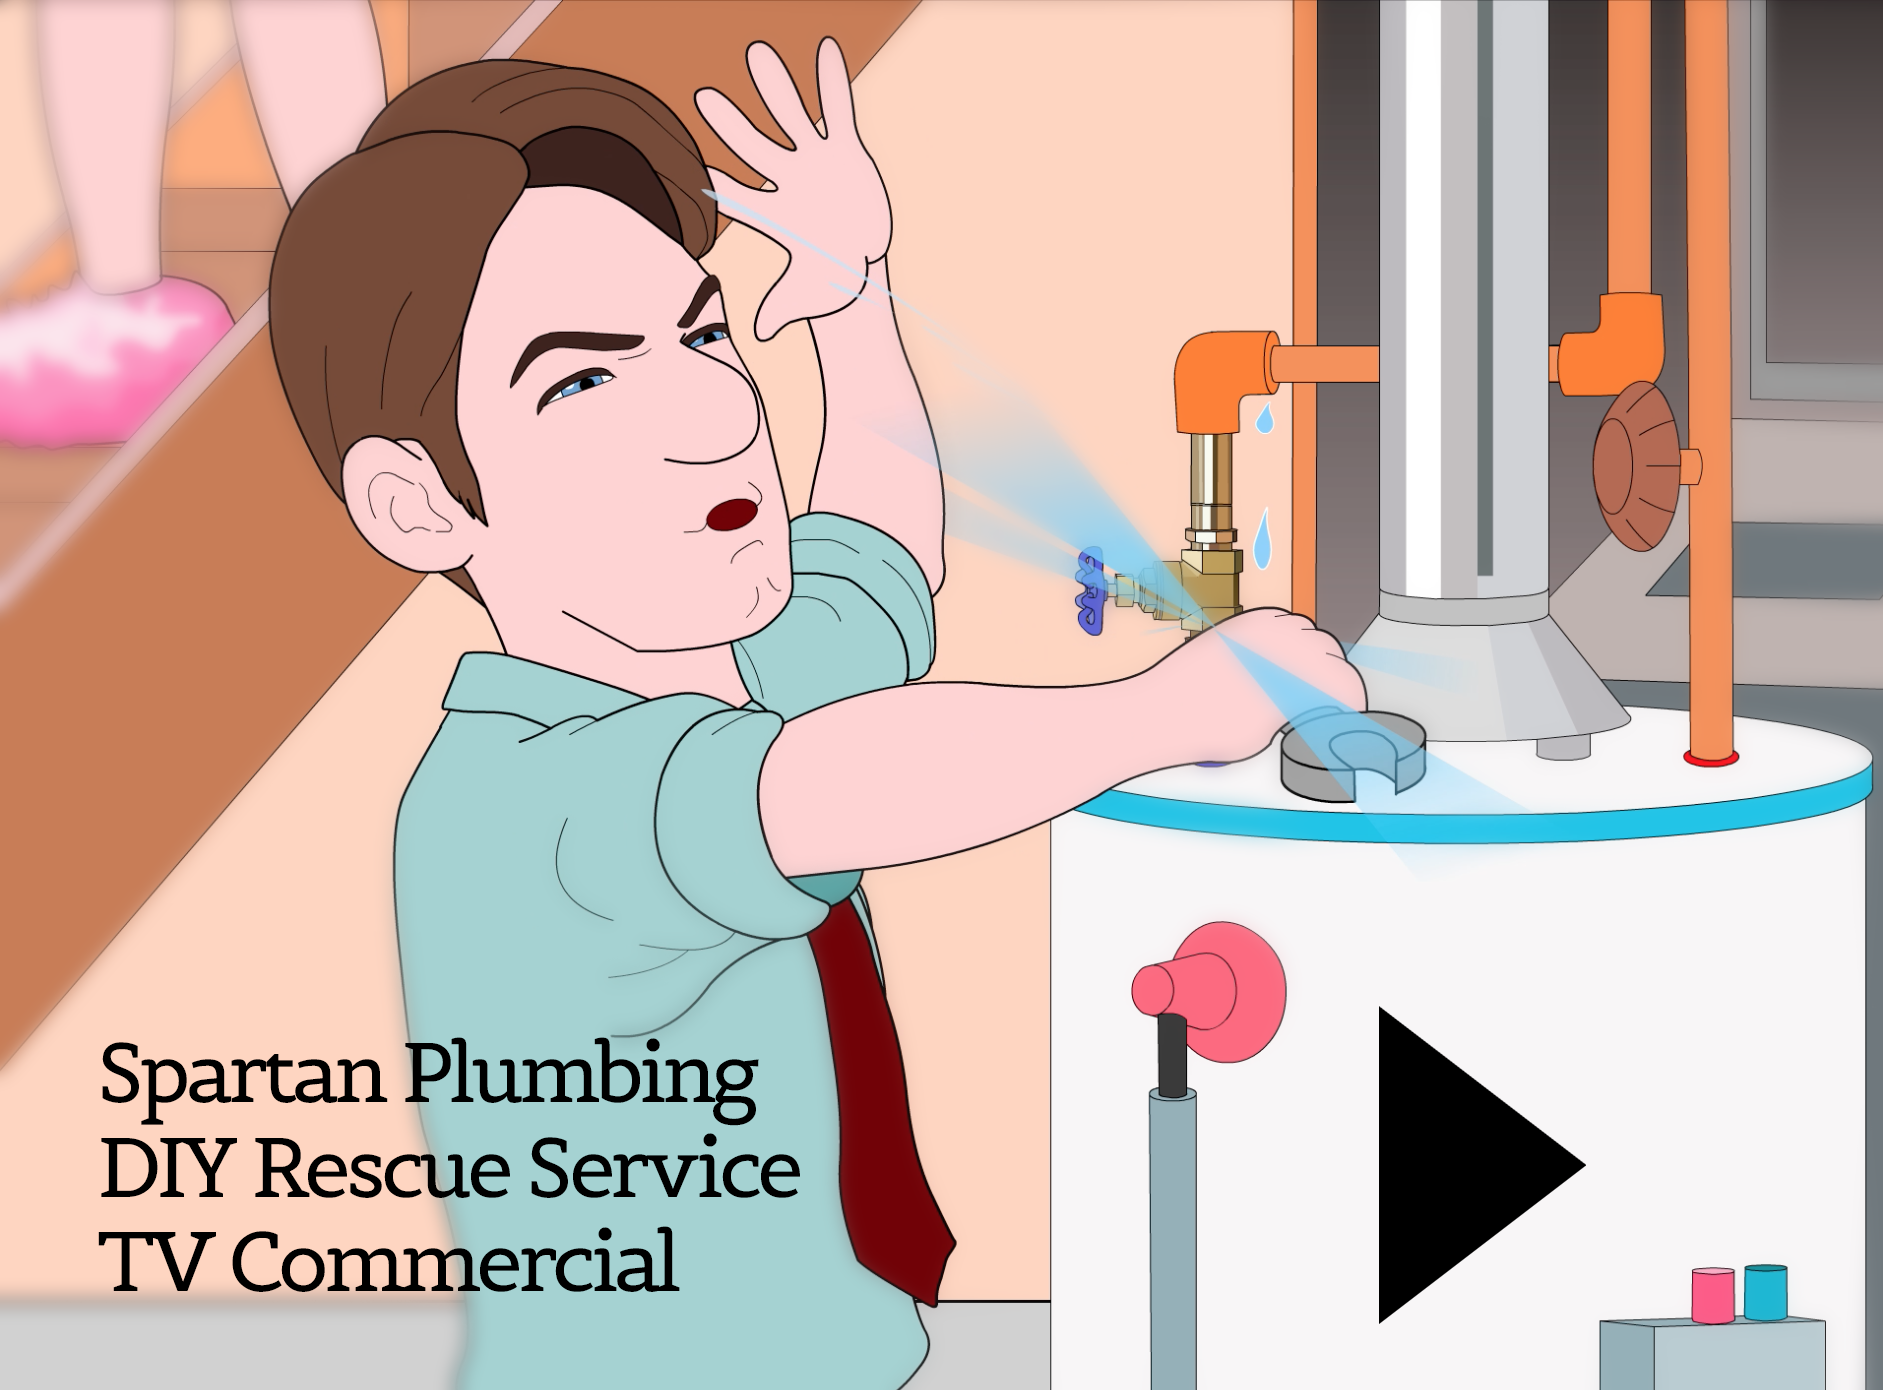 Spartan Plumbing Animated TV Commercial: DIY Woes!